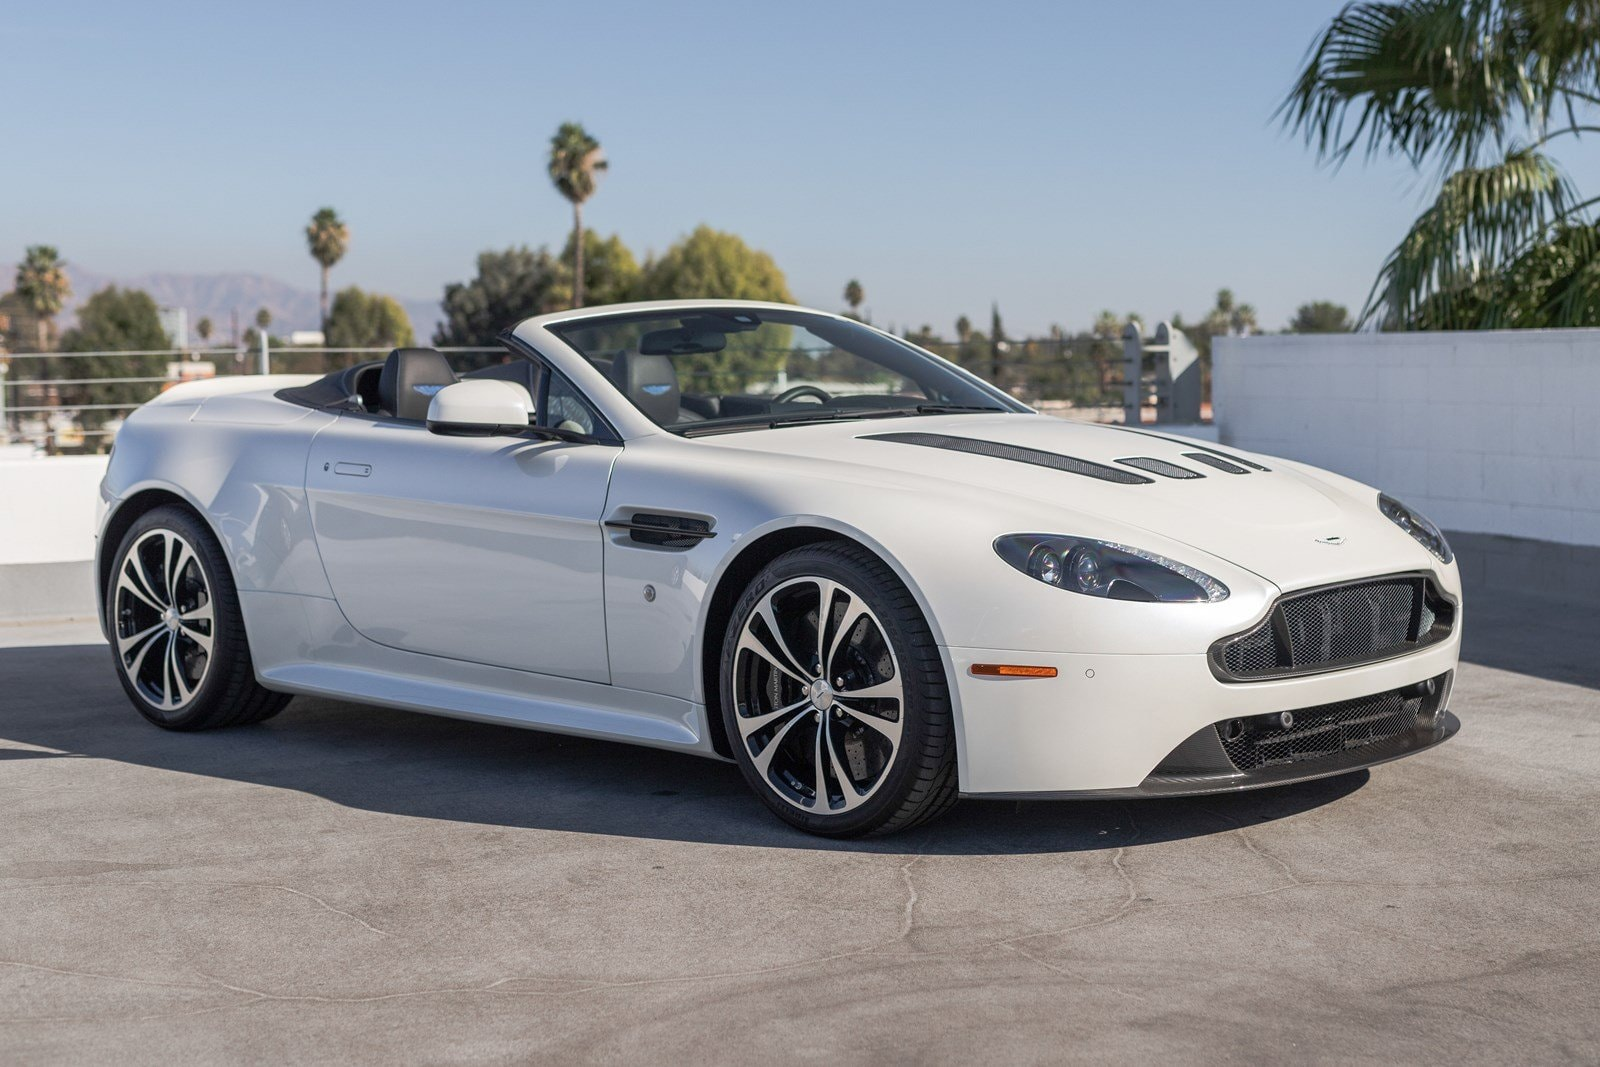 used 2017 aston martin v12 vantage s for sale at galpin volvo | vin